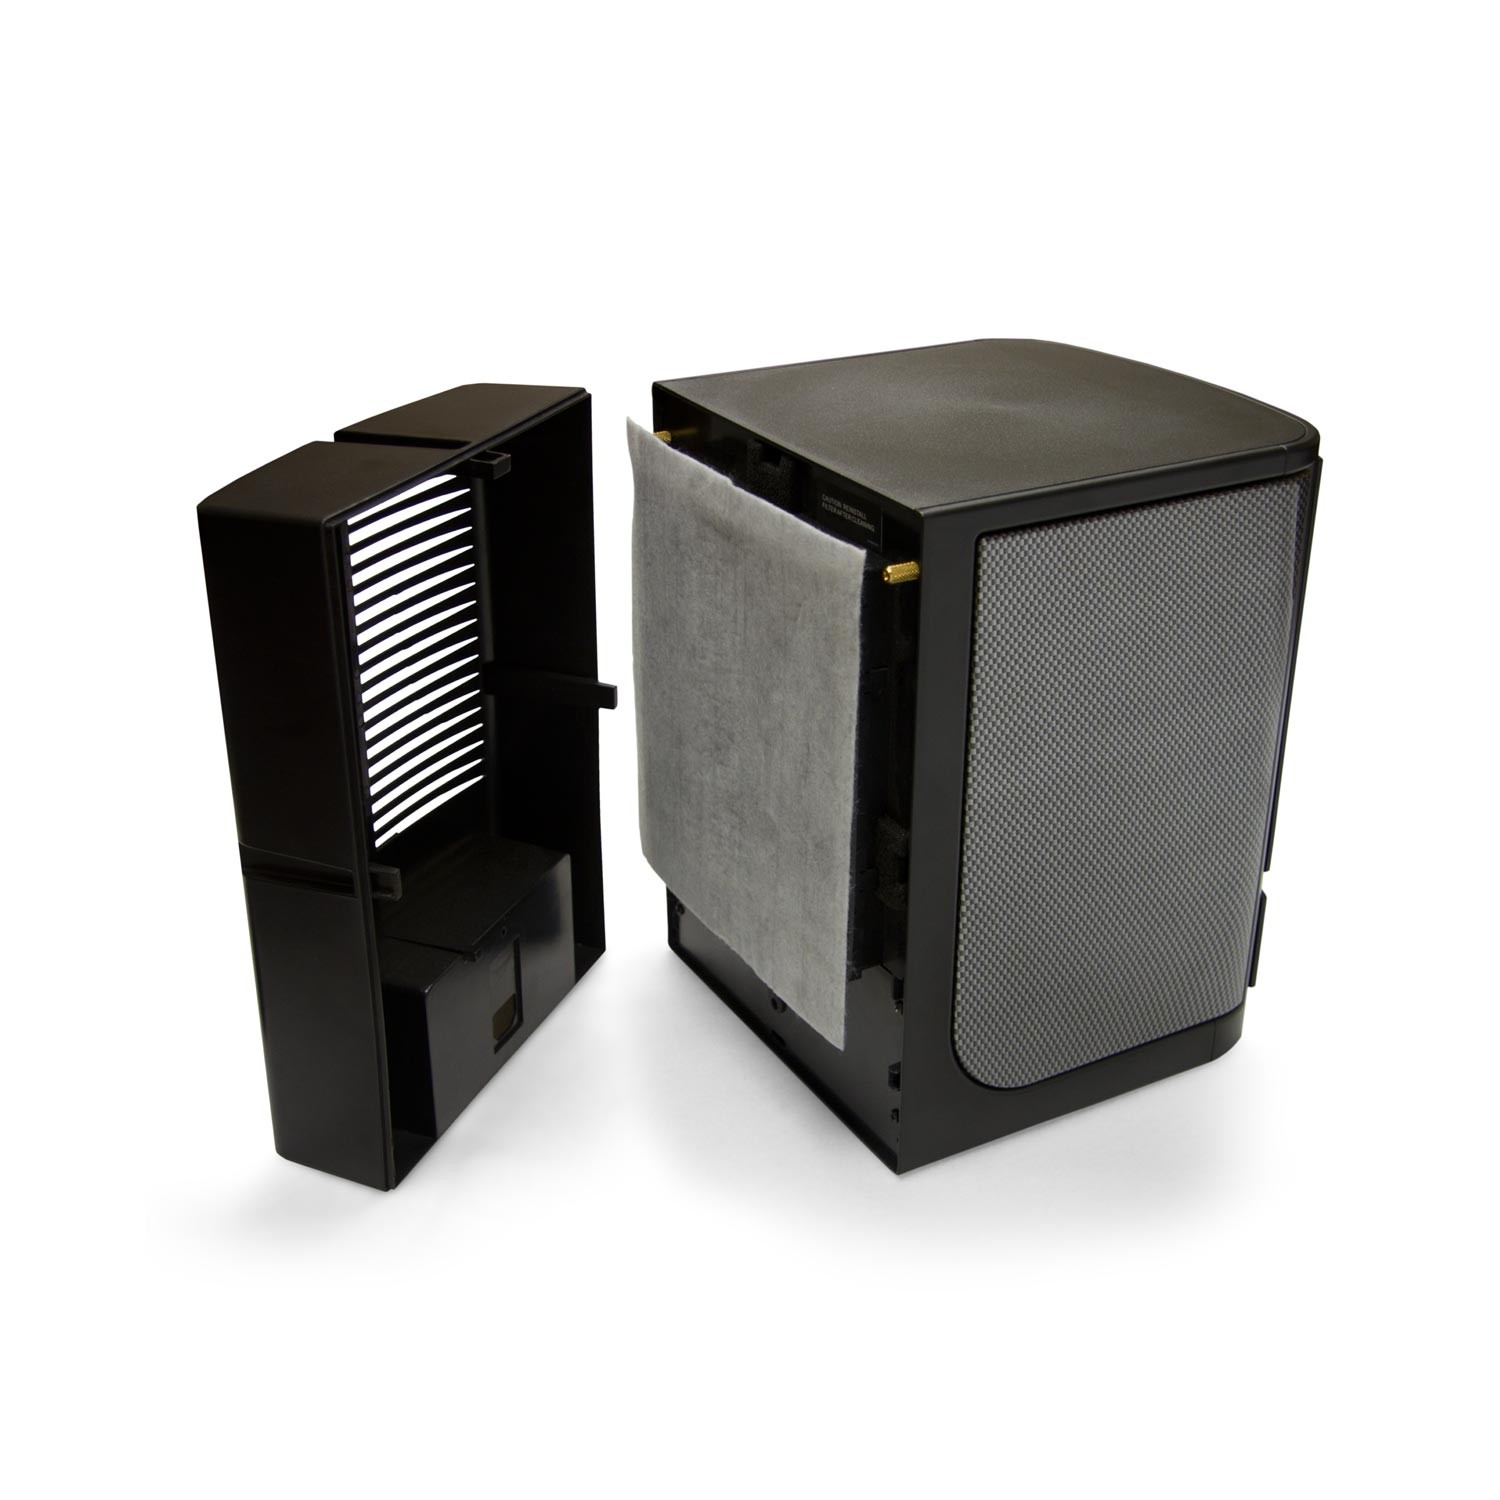 Harsh Environment Pre-Filters | Protect Your Unit, Extend Its Life